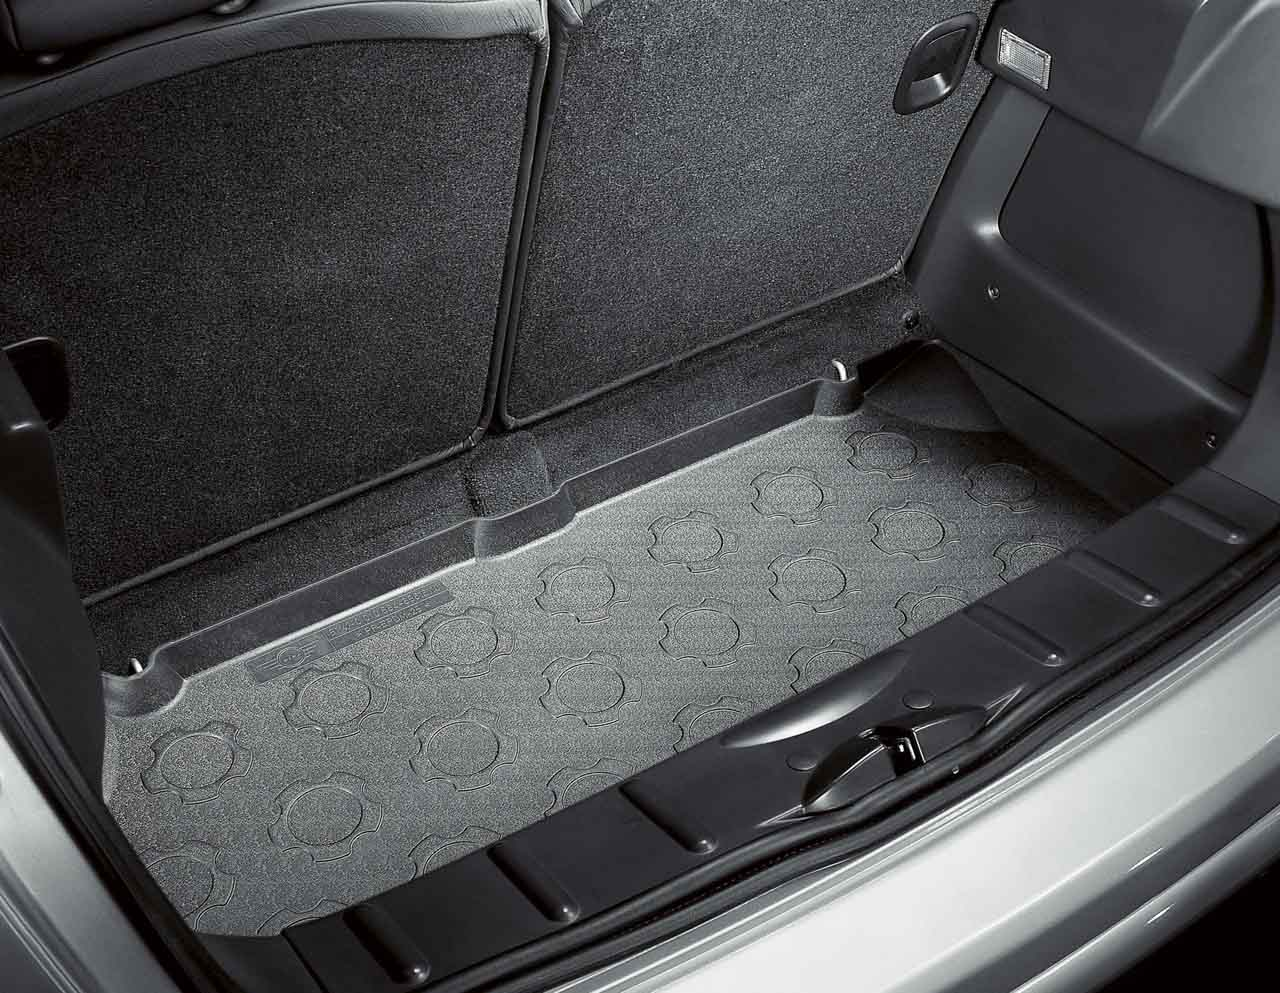 Mini cooper rubber floor mats uk - Mini Genuine Fitted Luggage Compartment Boot Mat Protector R50 R53 51470010564